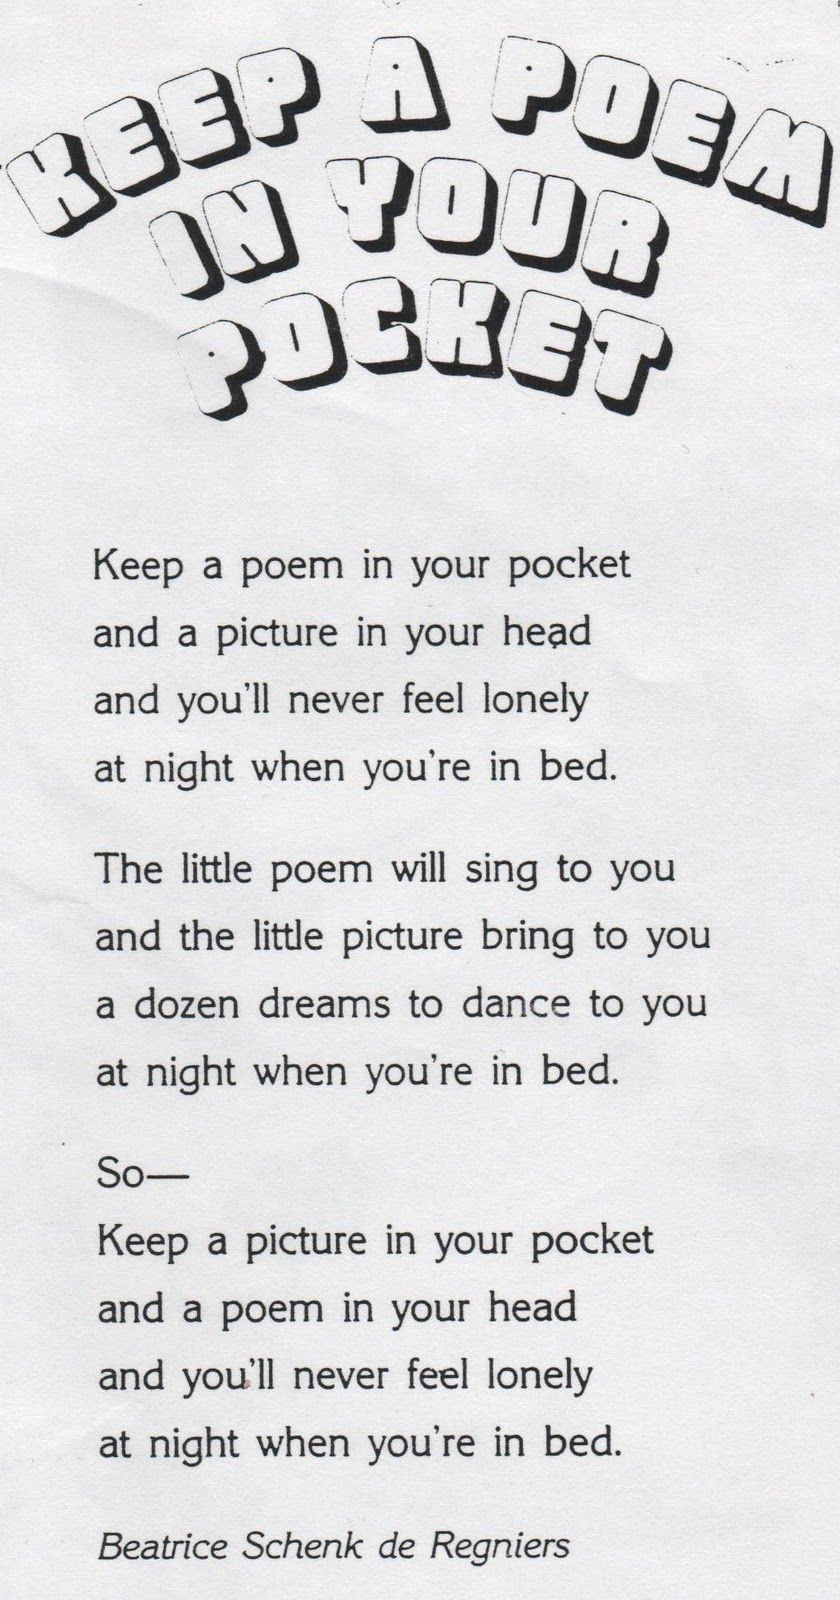 ELEMENTARY SCHOOL ENRICHMENT ACTIVITIES: KEEP A POEM IN YOUR ...